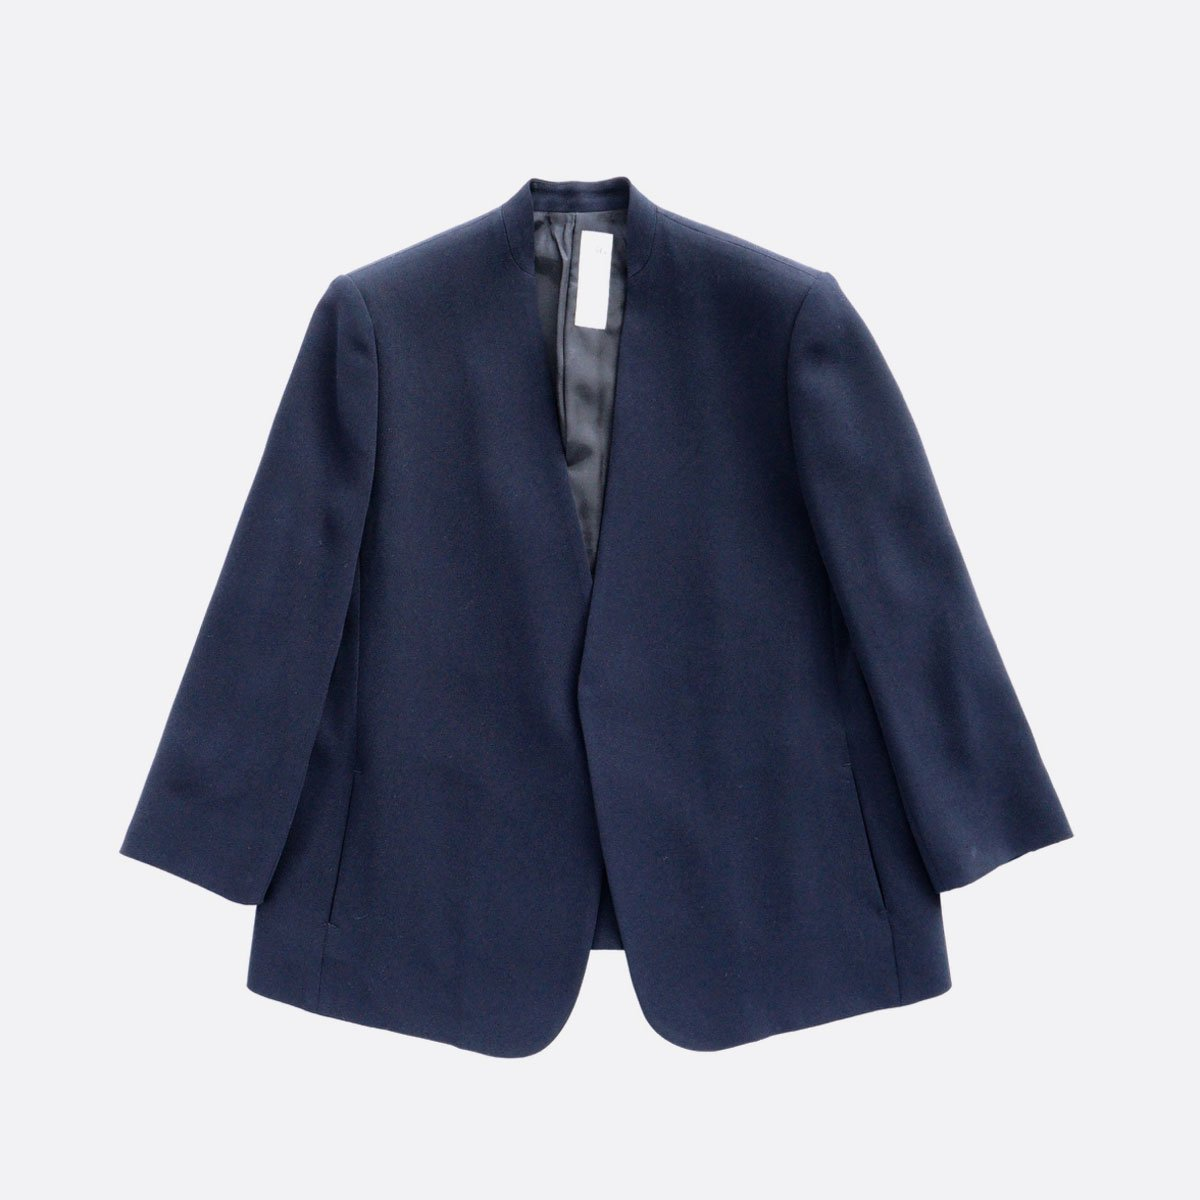 NO CONTROL AIR ACETATE & POLYESTER DOUBLE CROTH NO COLOR JACKET (NAVY)